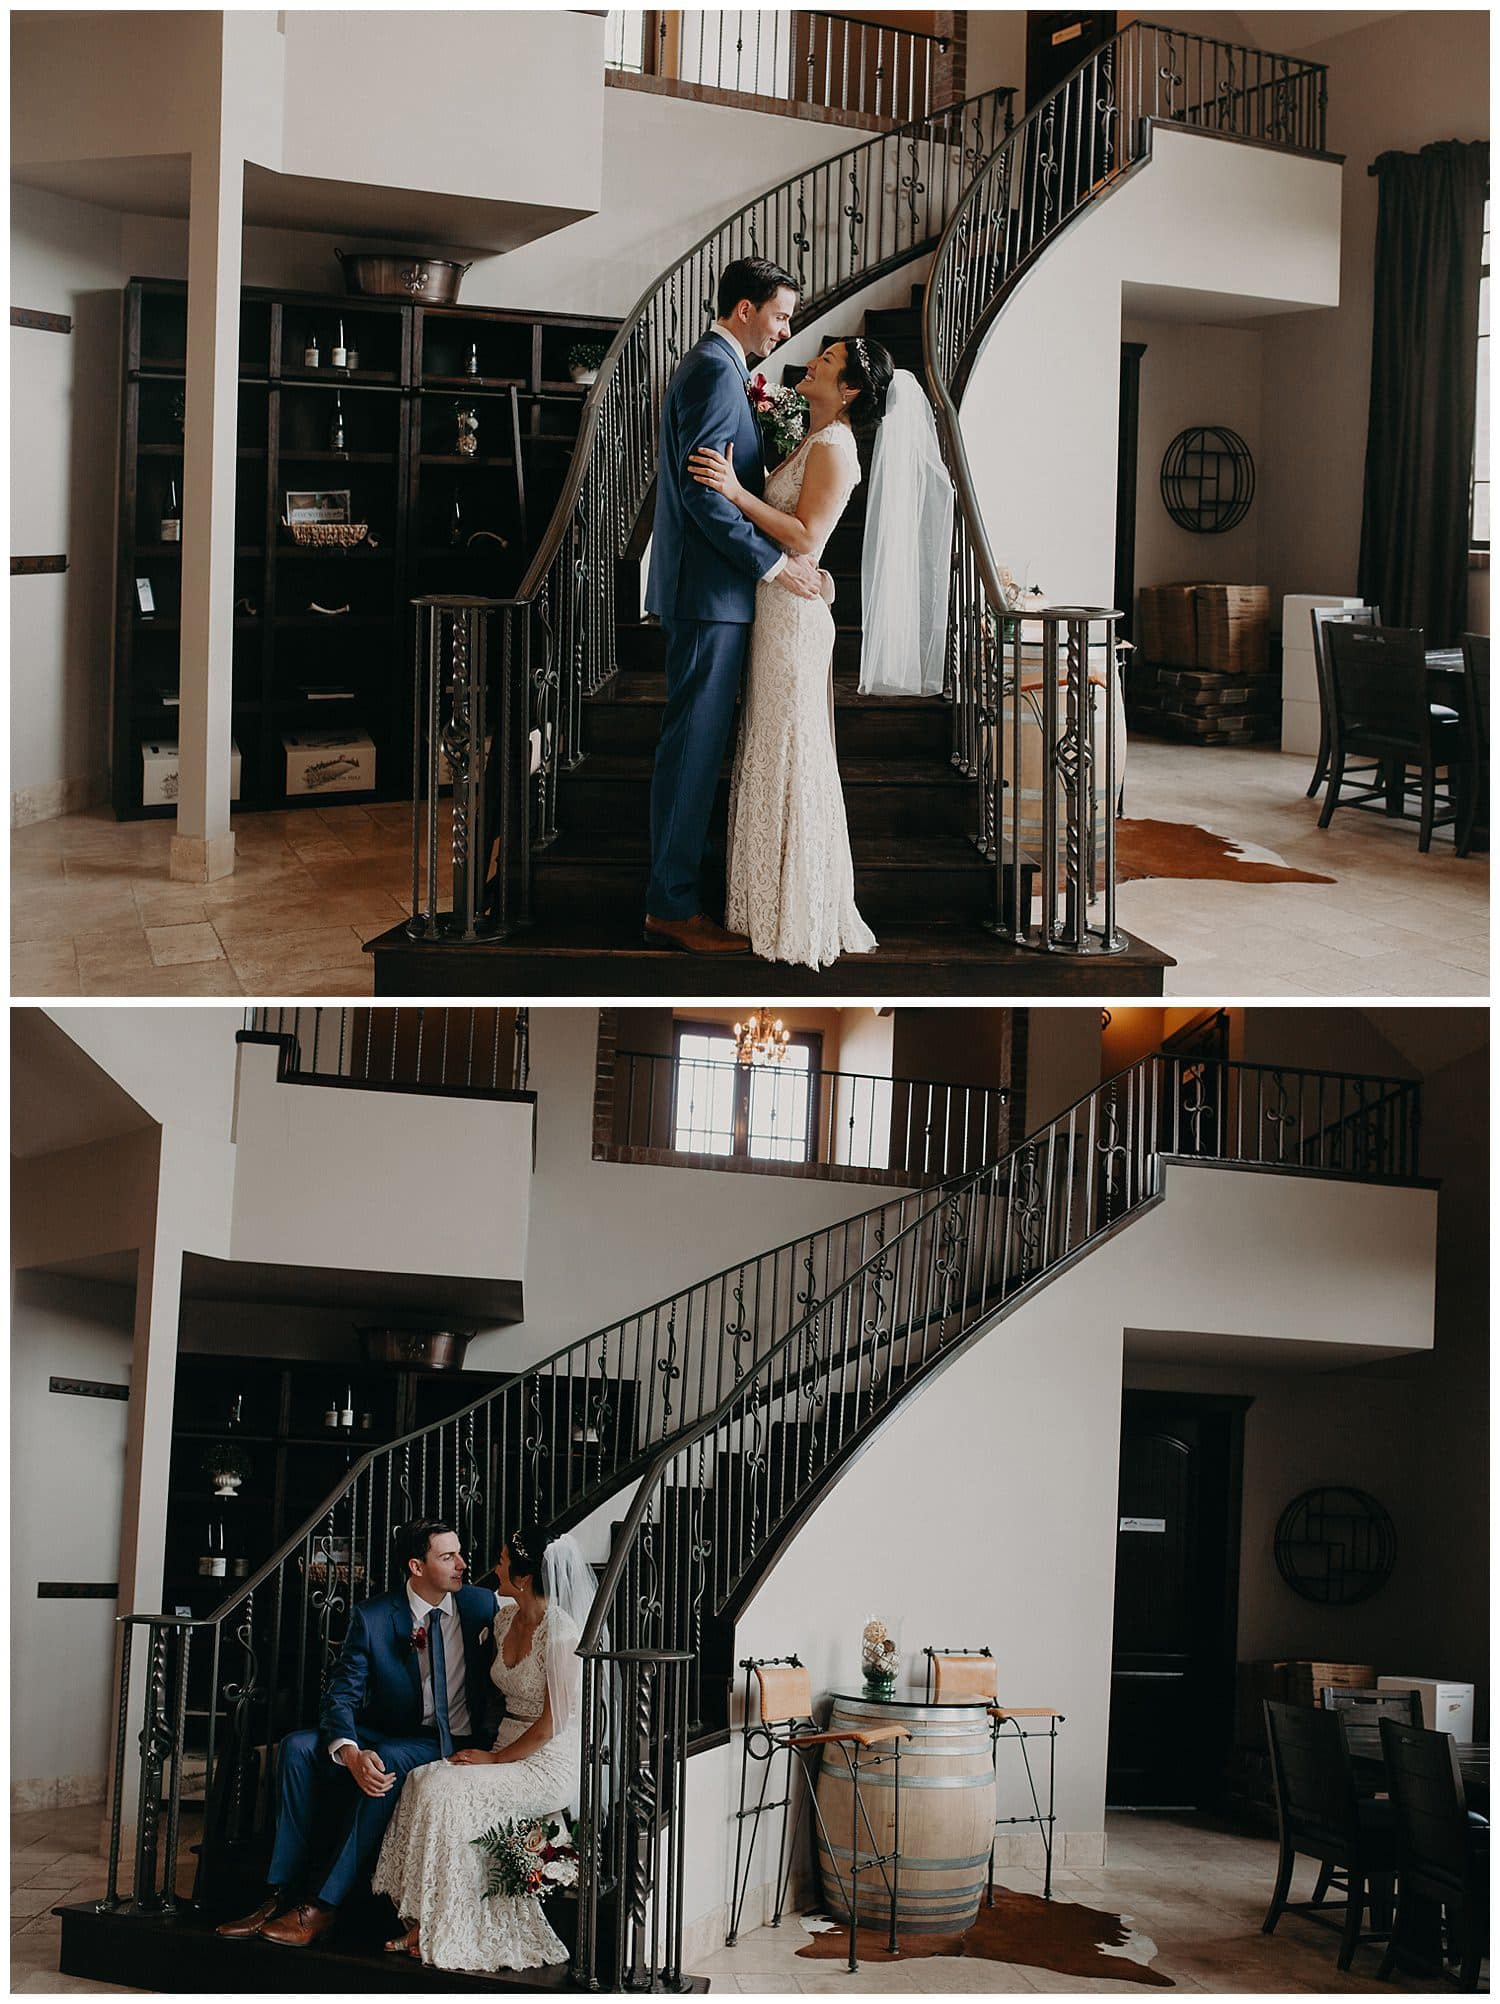 classic staircase wedding shot at beacon hill wedding